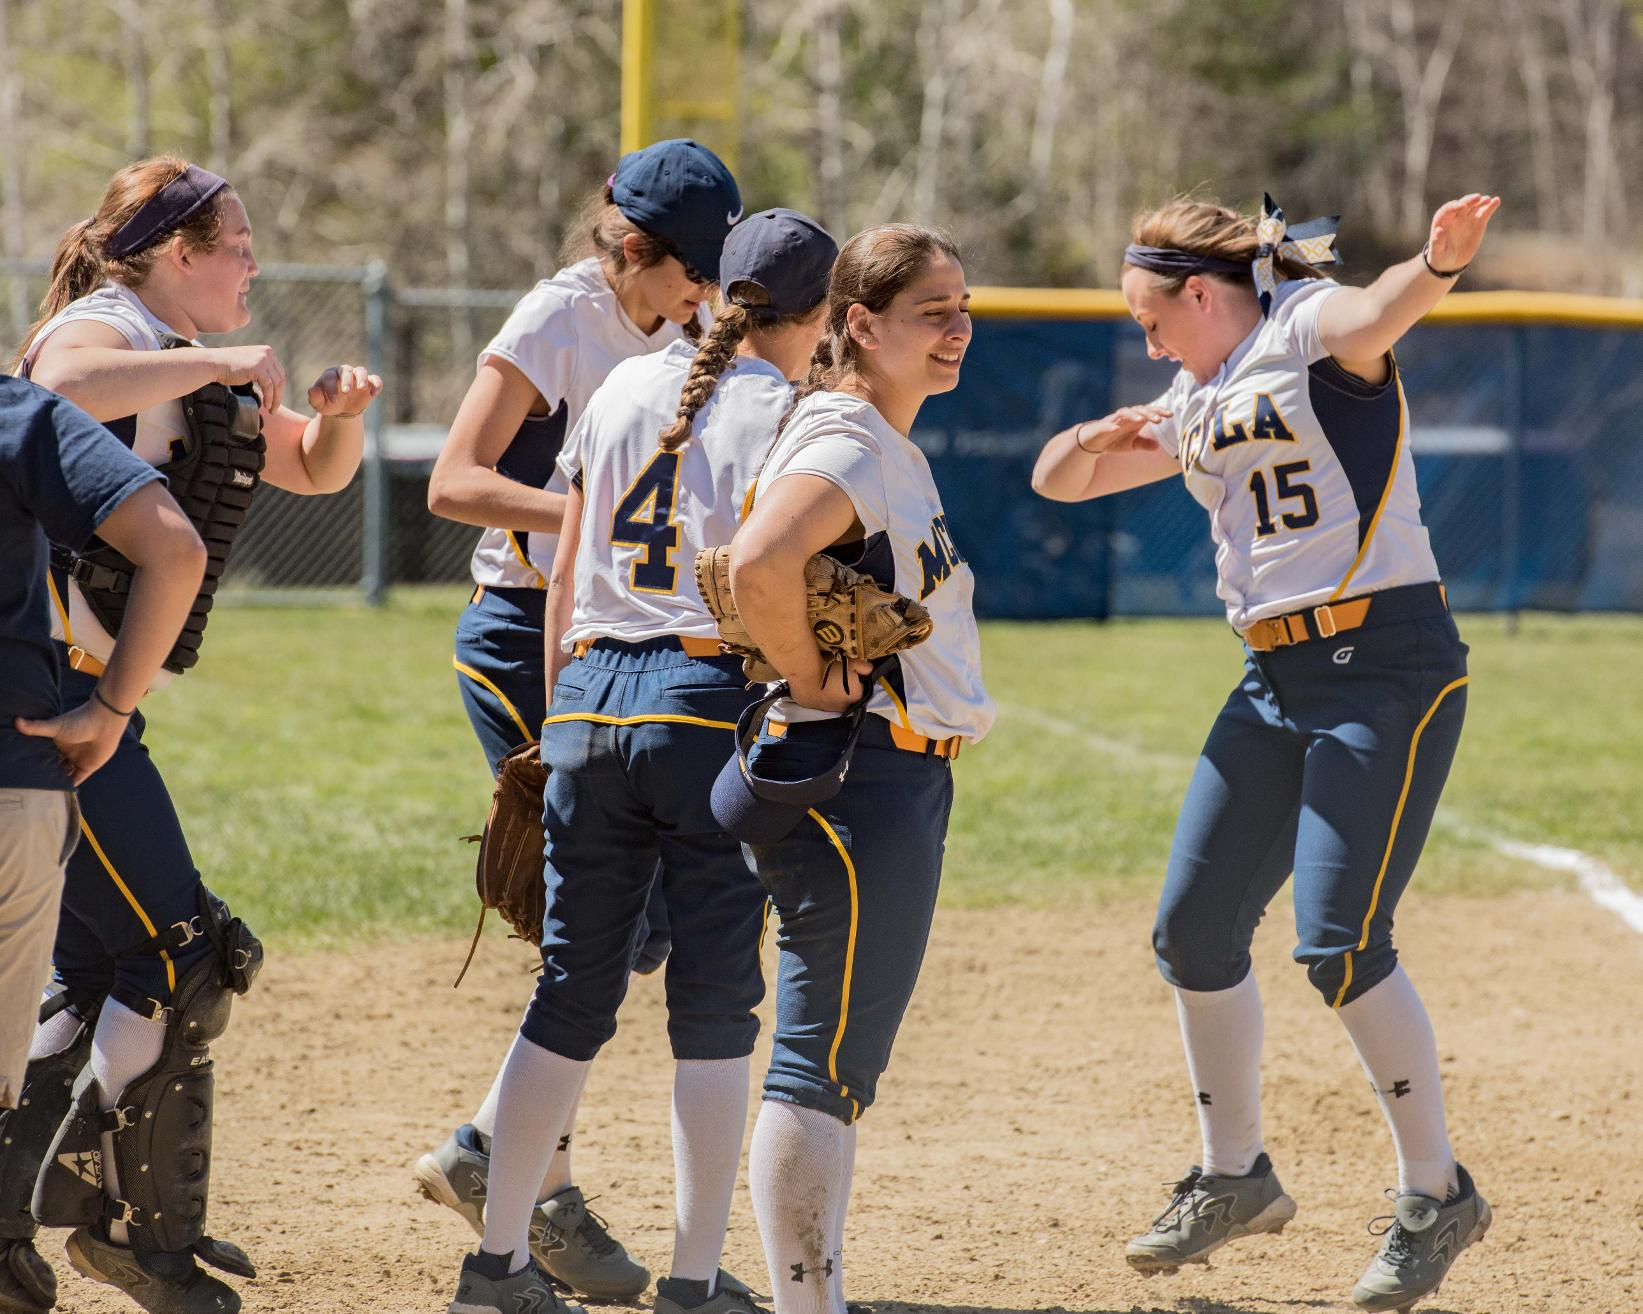 Softball falls to Wesleyan and Buena Vista in Florida